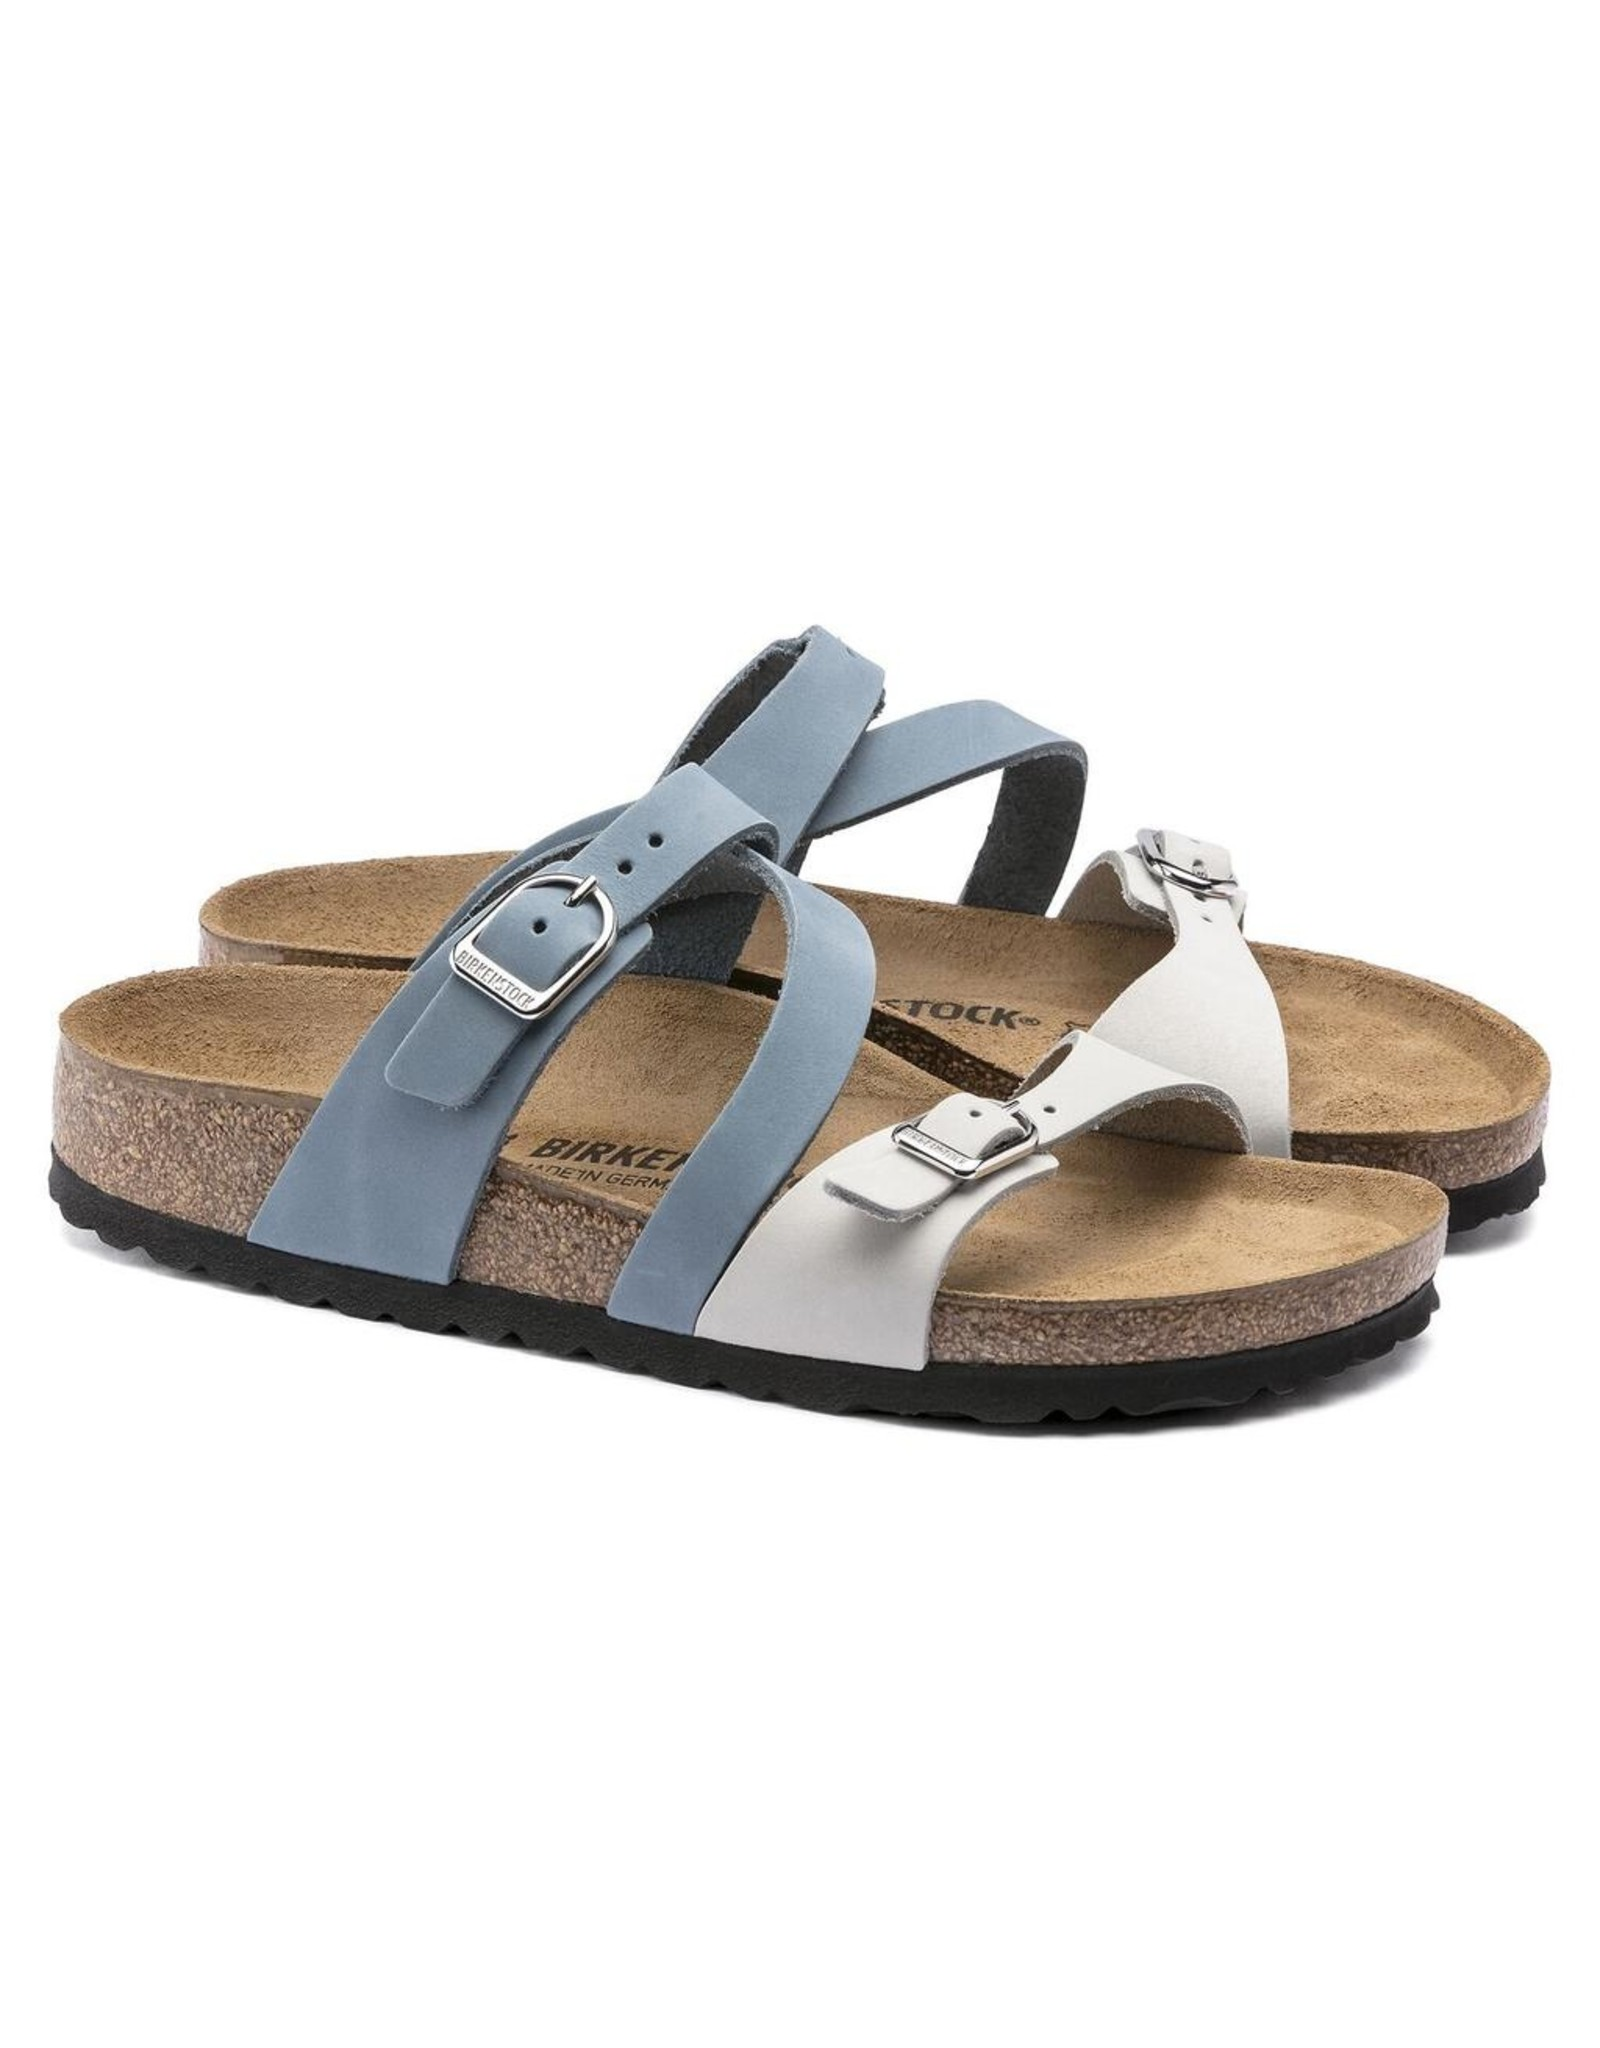 Birkenstock Salina Sandal Dove Blue & Mineral Nubuck Leather